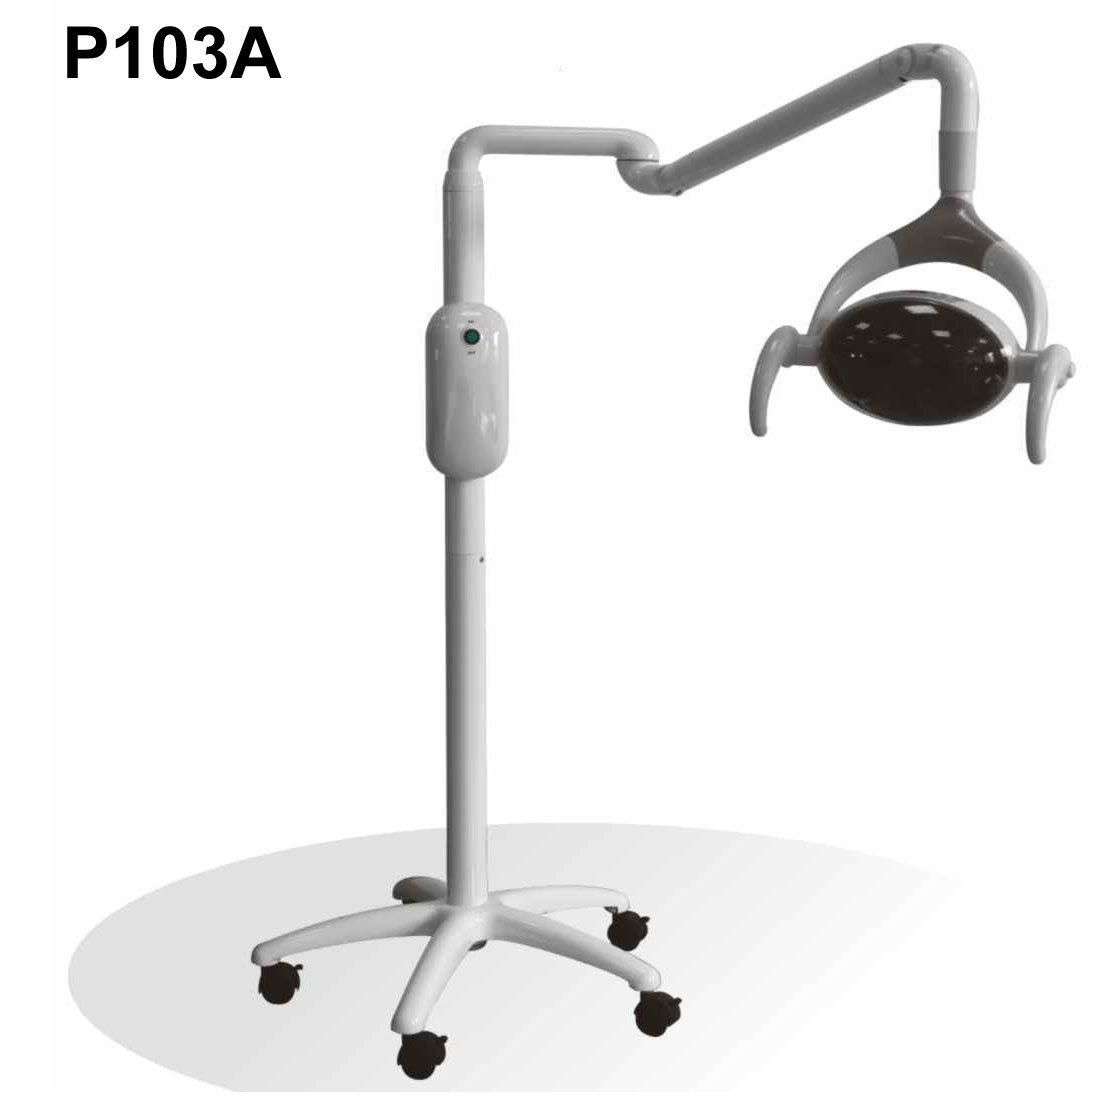 dental chair light stand game with steering wheel 28w oral patient lamp 6 led p103a color